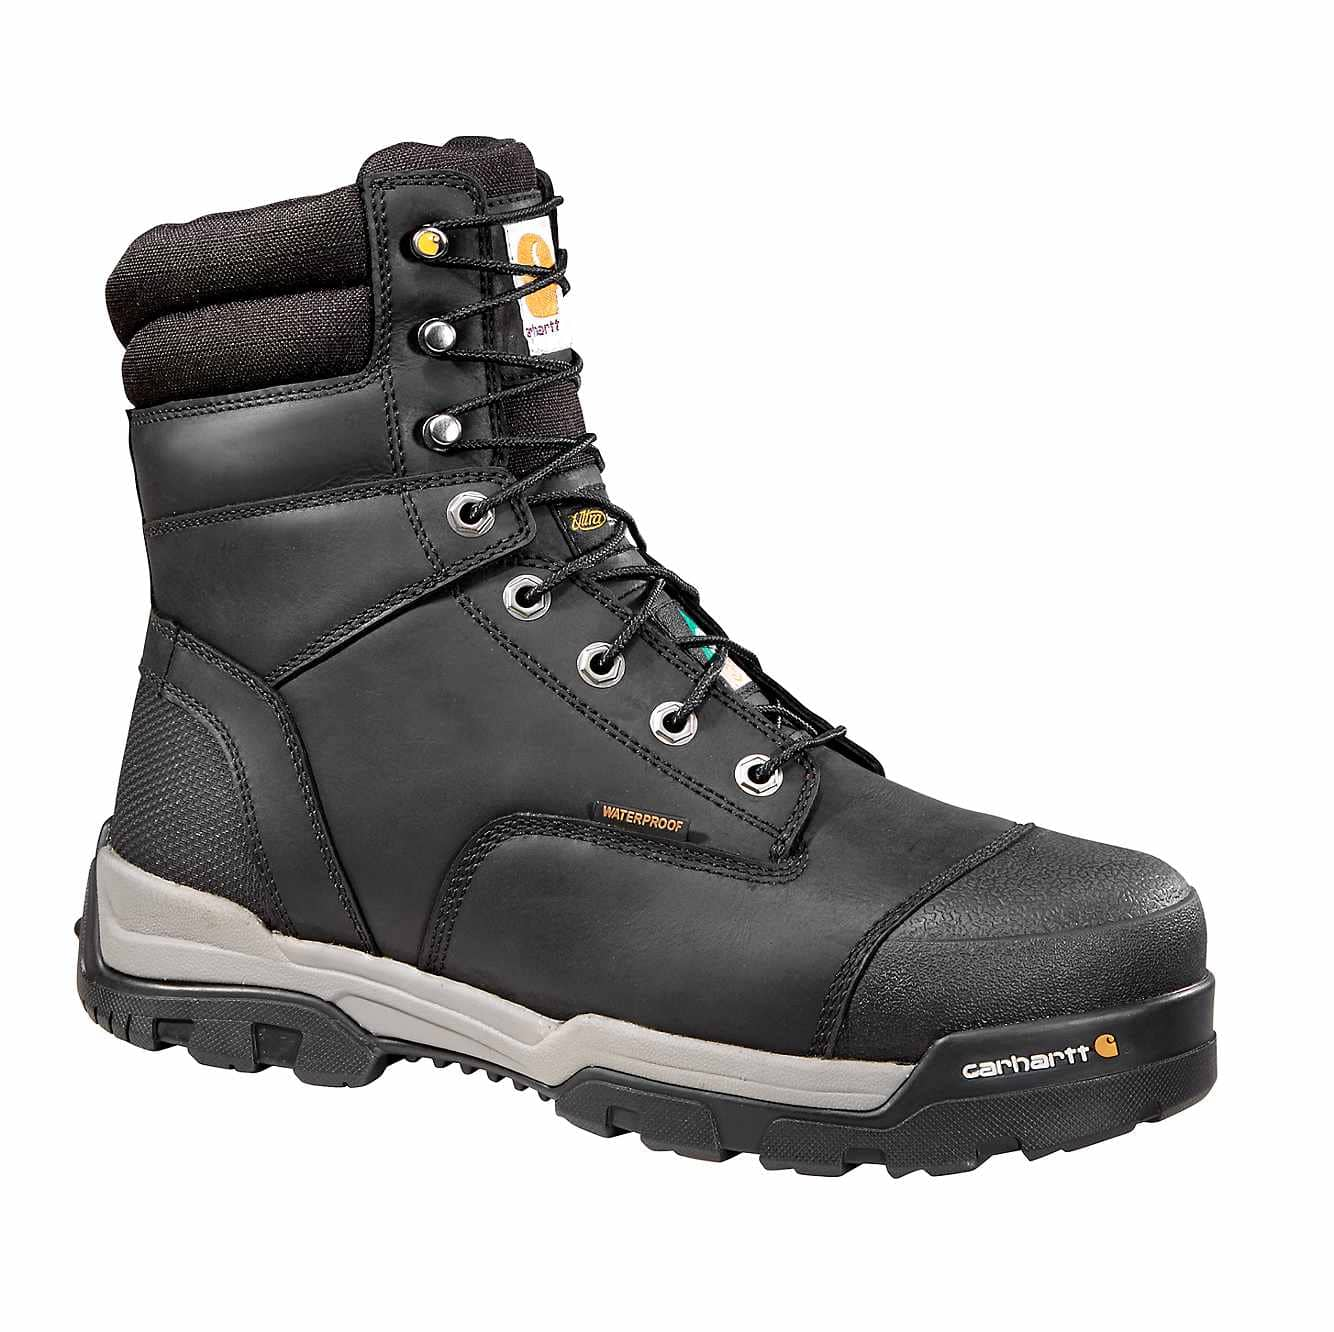 Picture of Ground Force 8-Inch Insulated Composite Toe CSA Work Boot in Black